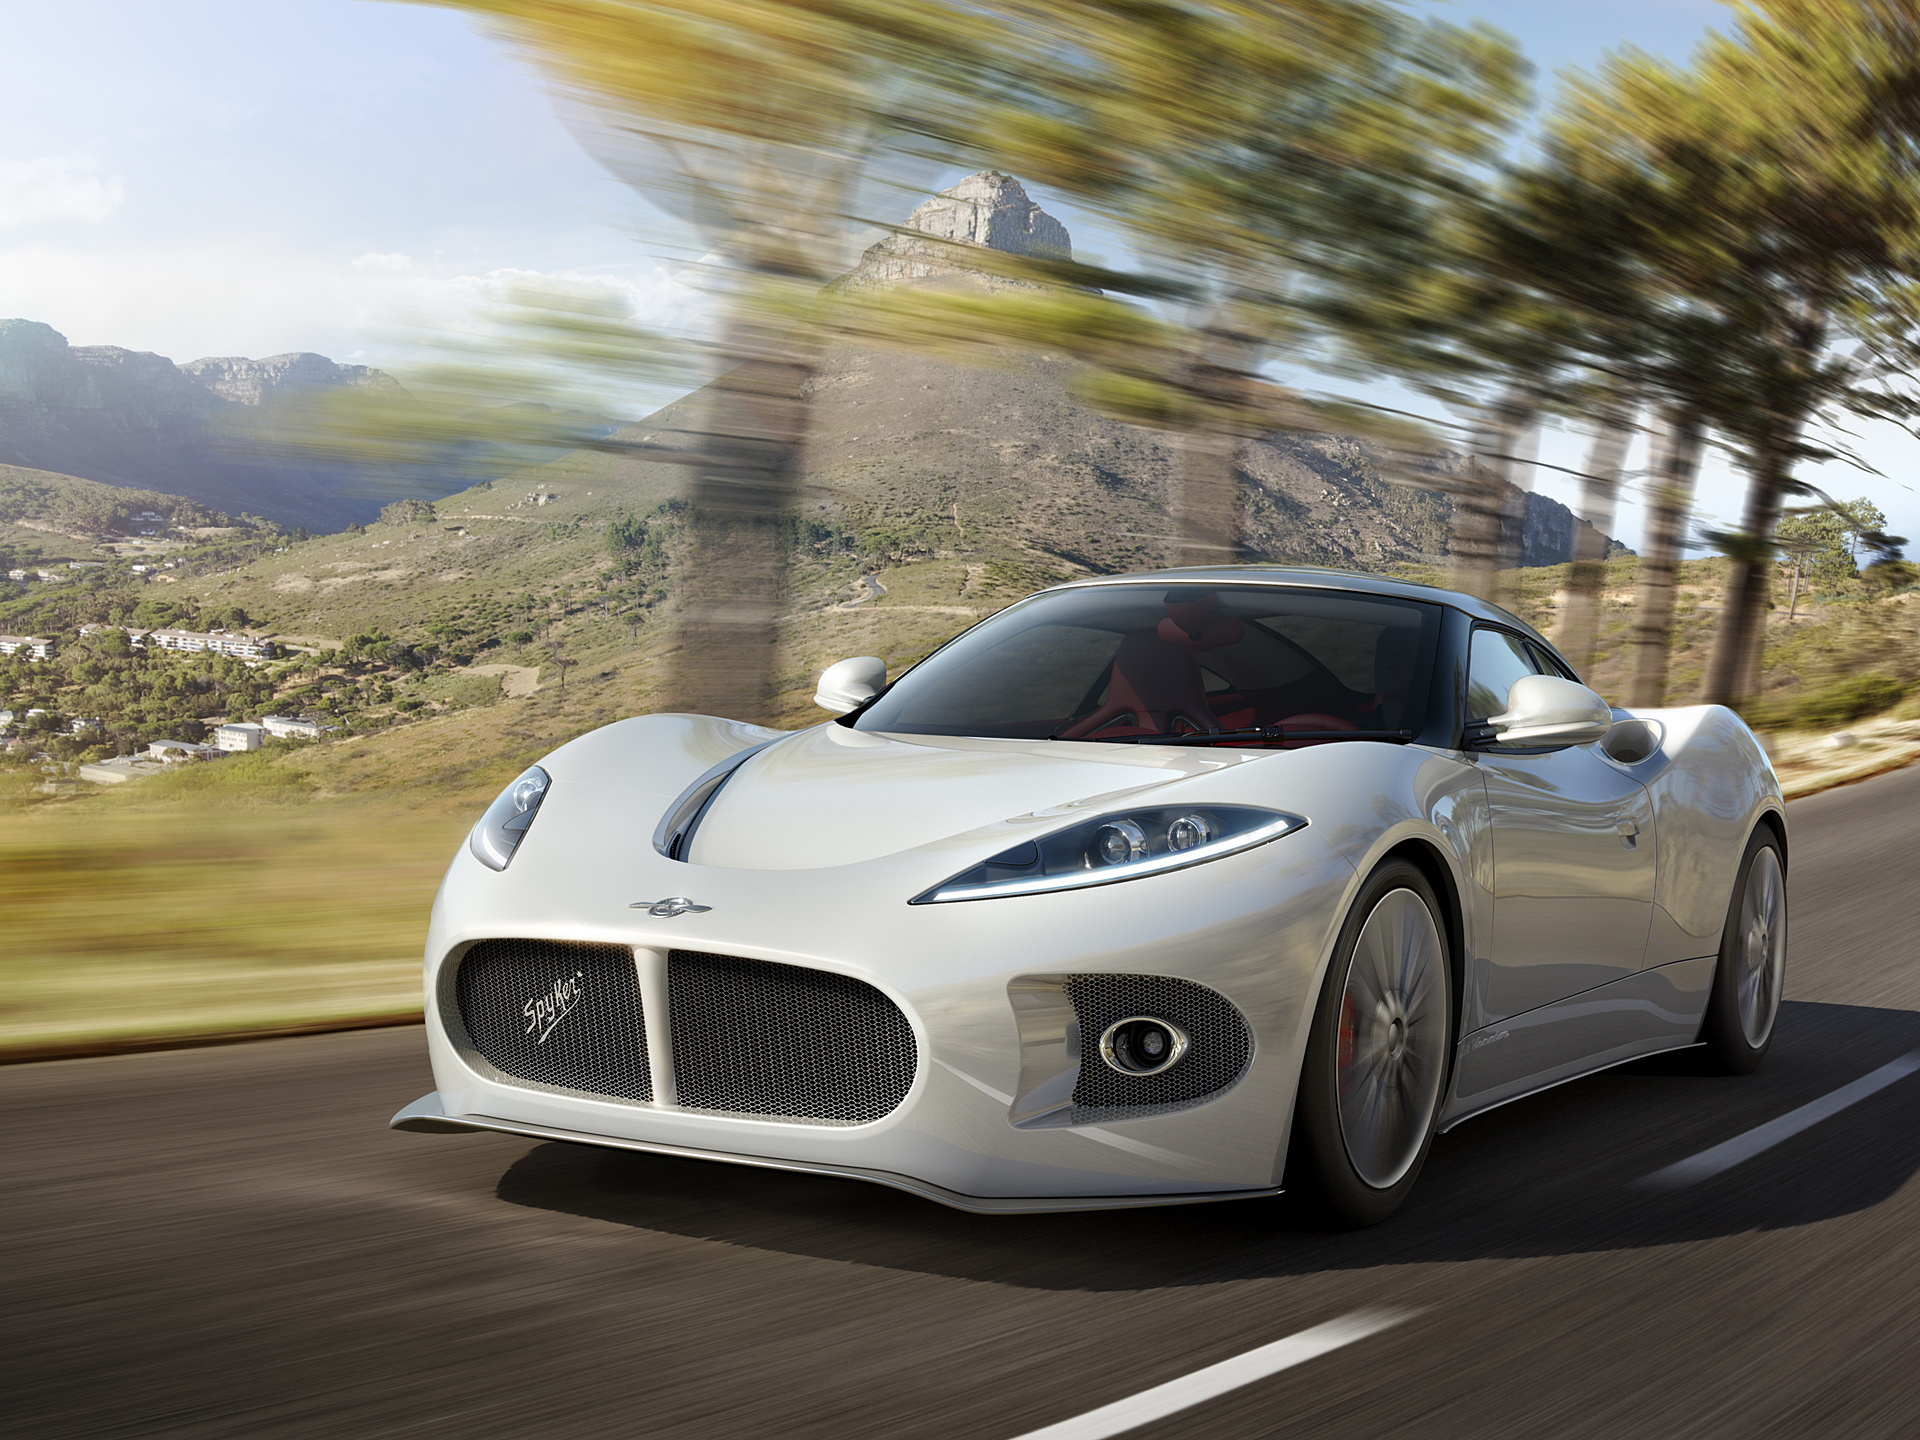 2013 Spyker B6 Venator Concept photo - 2